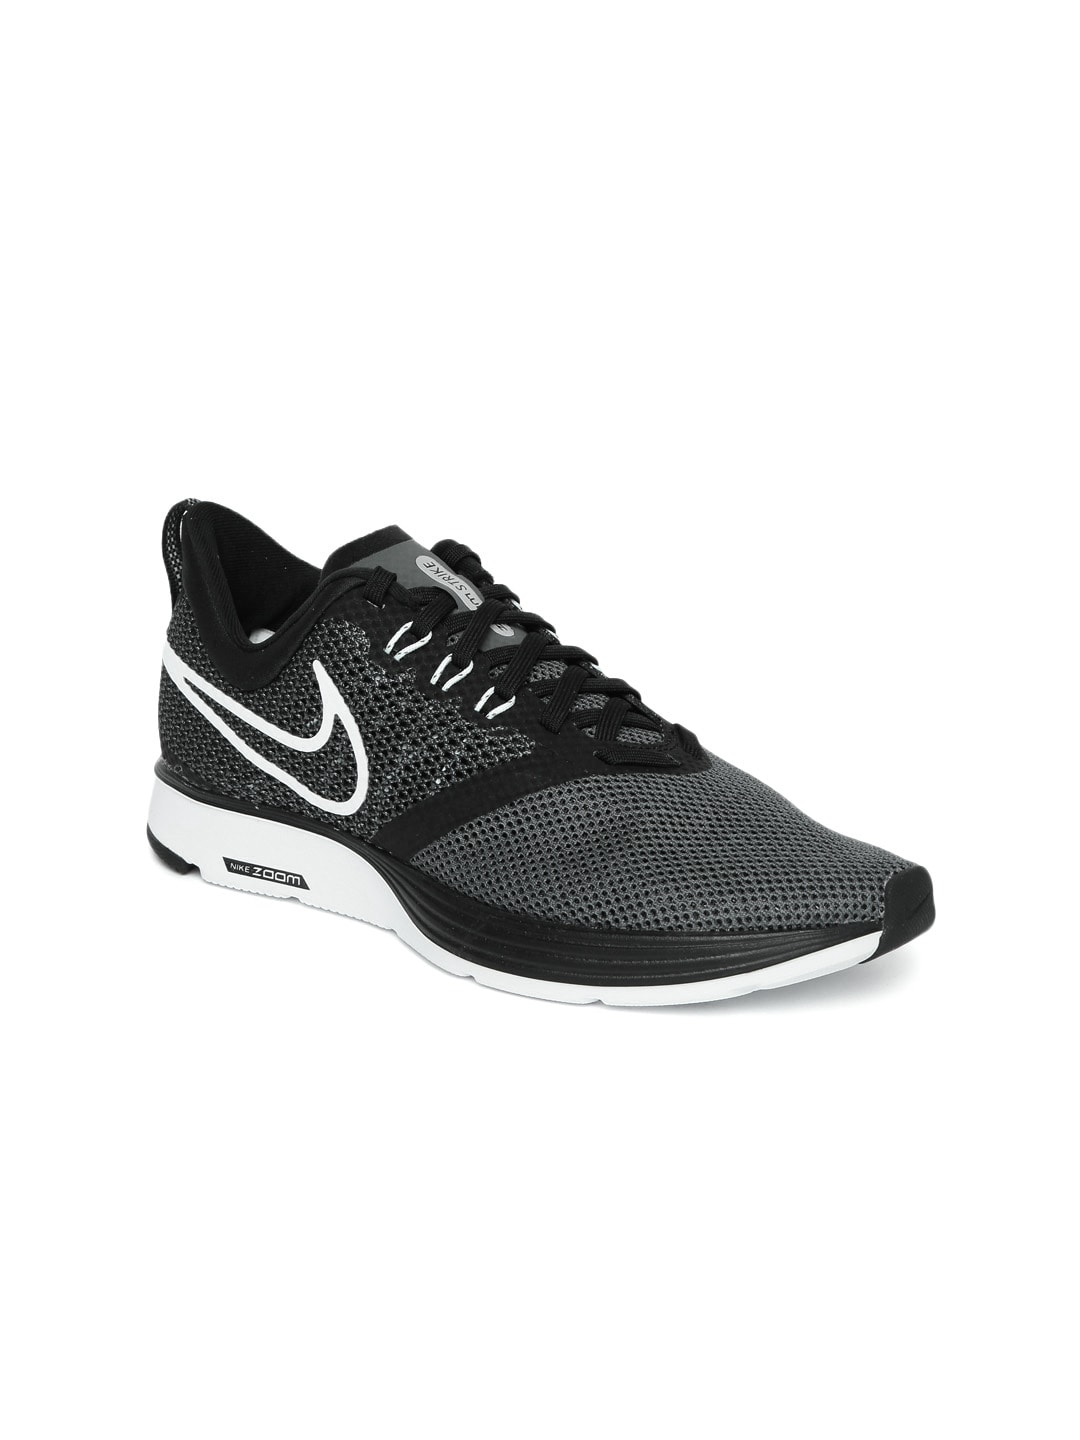 20f6f096c1b Nike Zoom Sports Shoes - Buy Nike Zoom Sports Shoes online in India